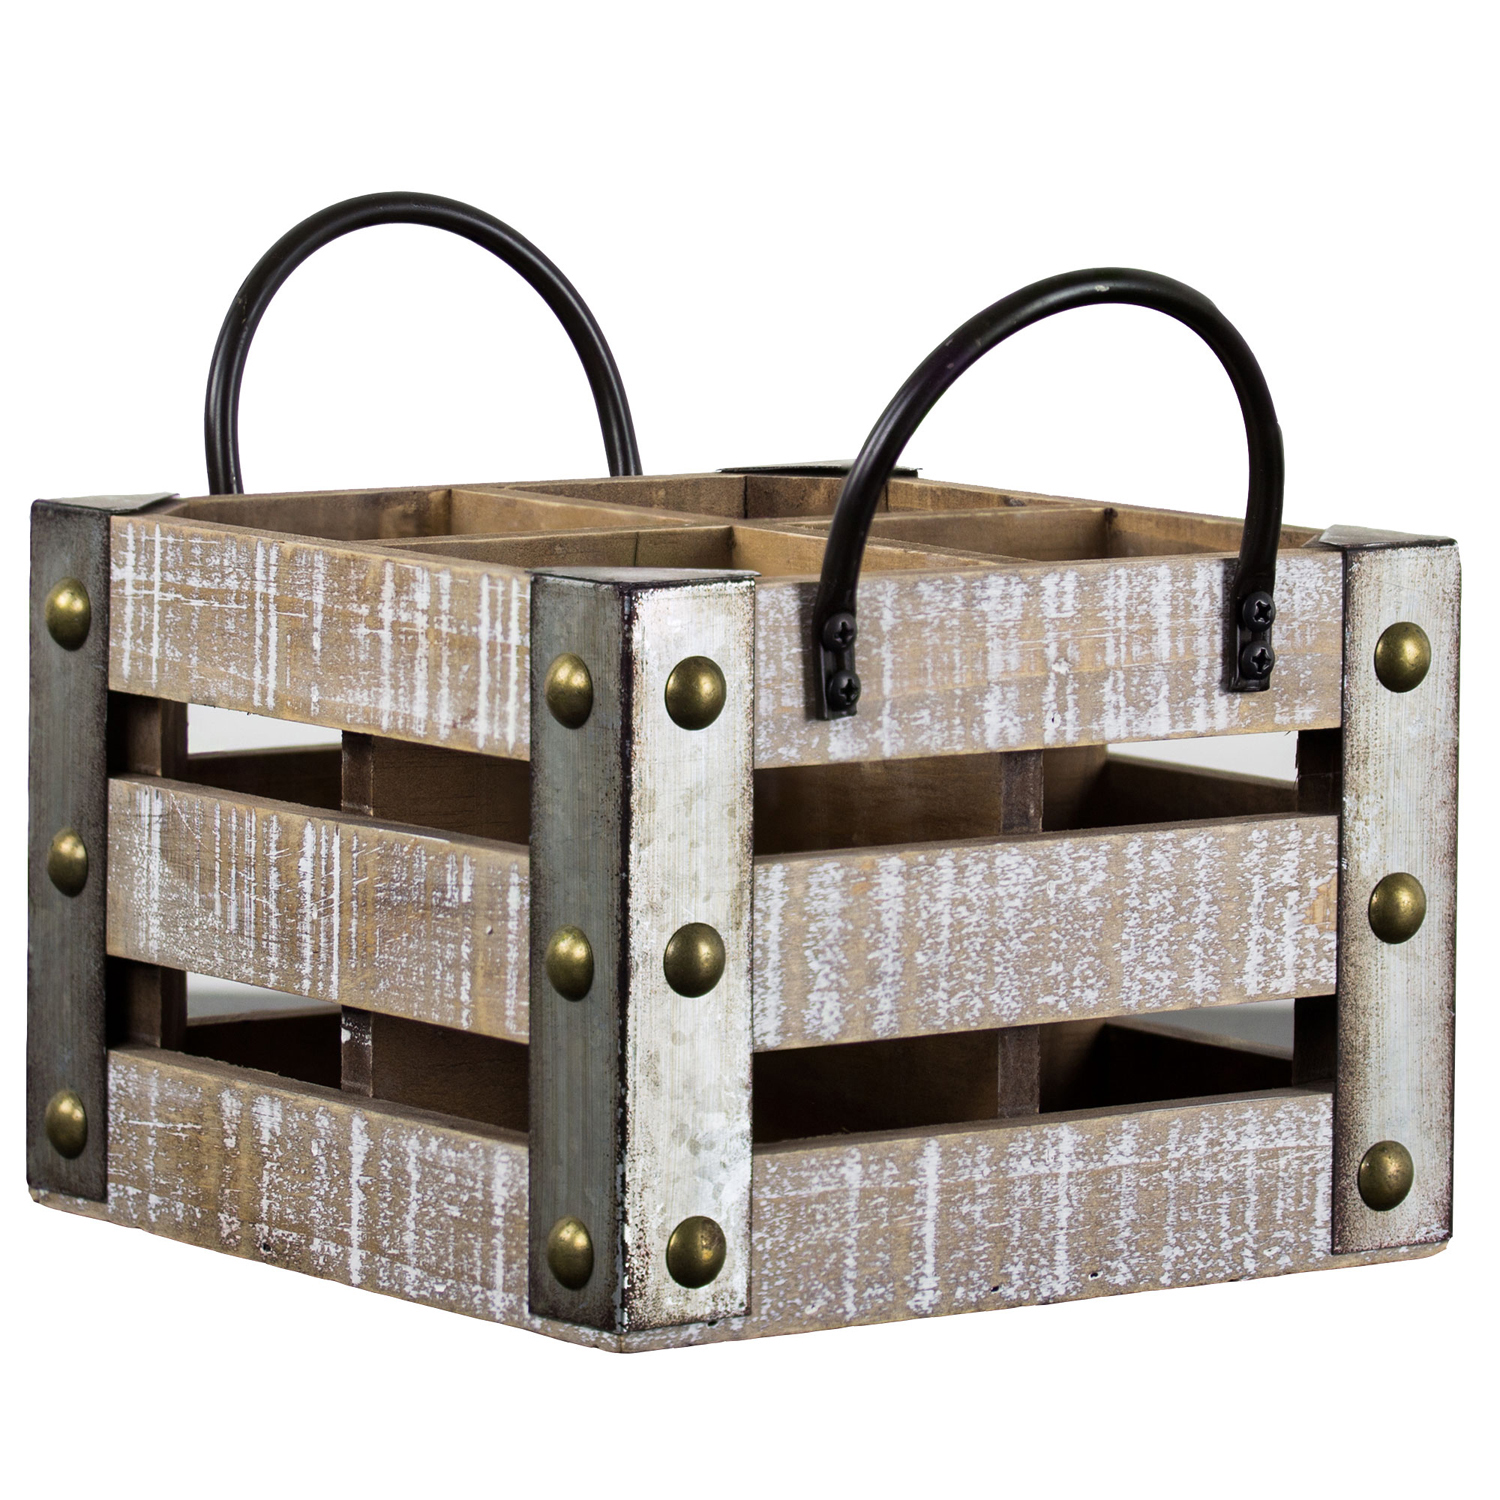 Rustic Four Bottle Wine Crate